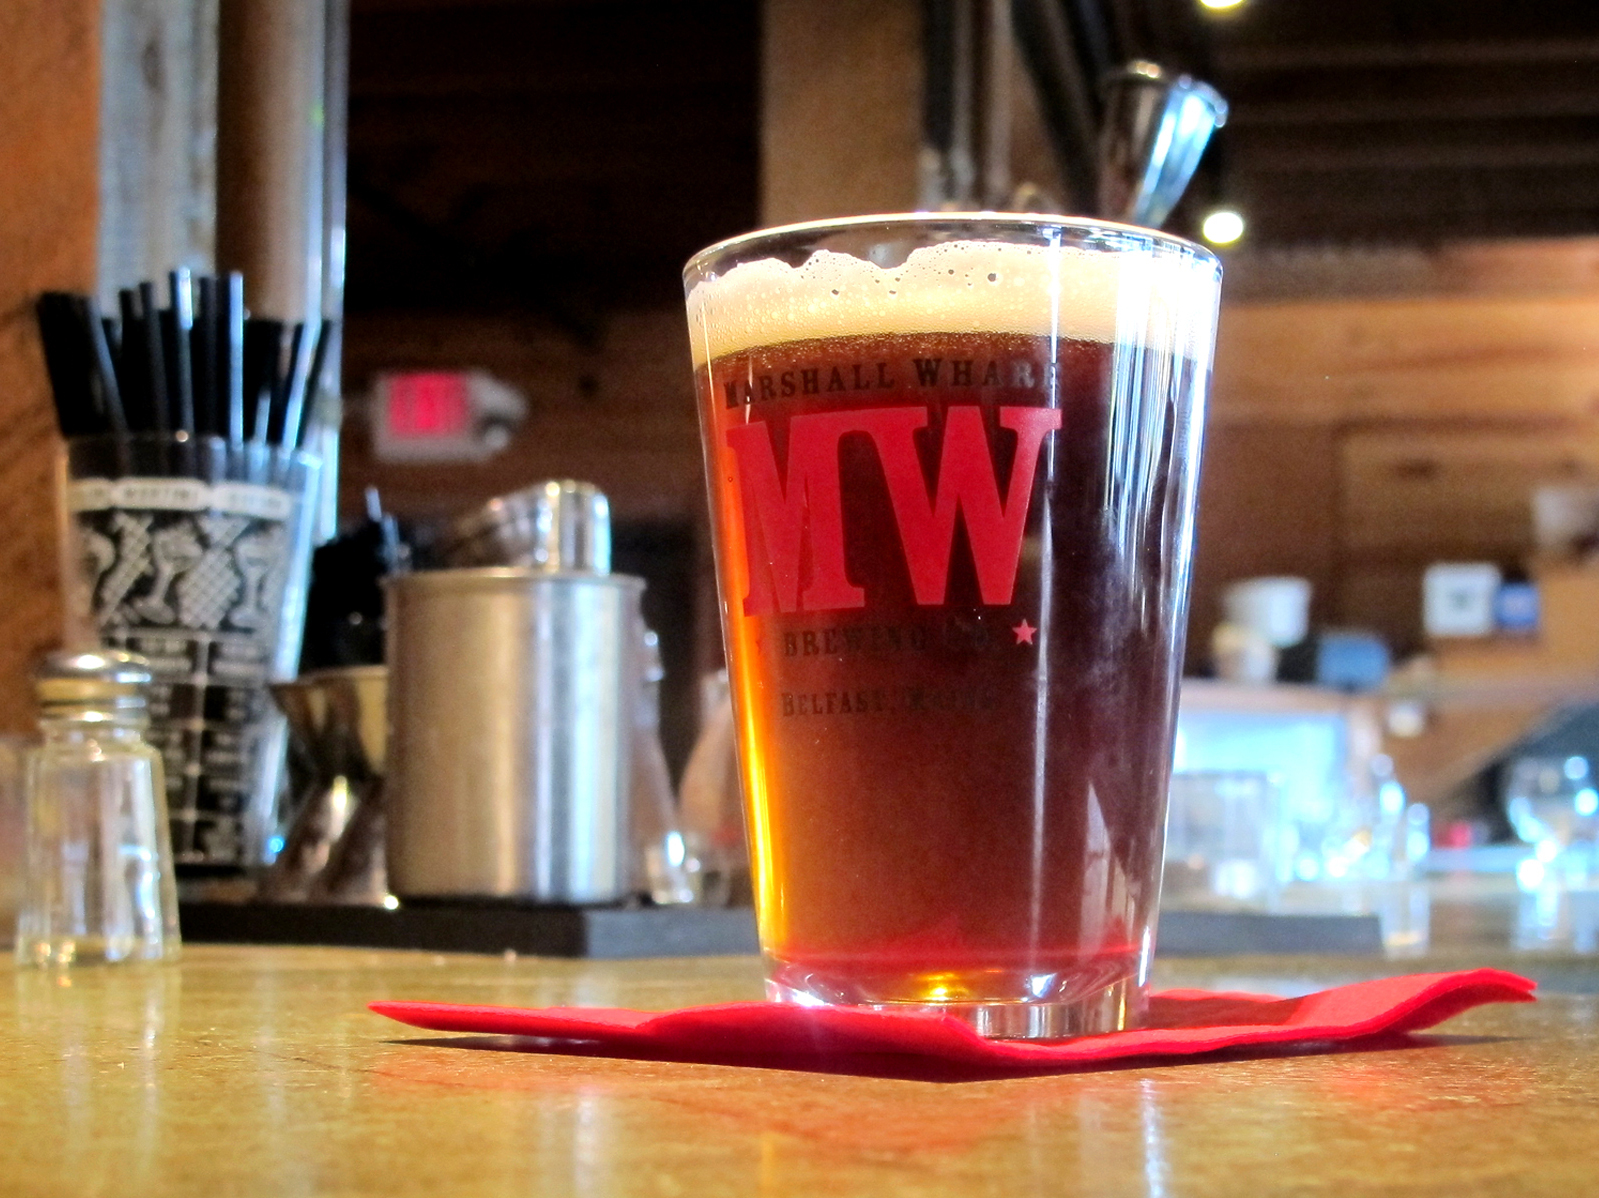 A glass of the seaweed beer created by Marshall Wharf Brewing Co. in Belfast, Maine. Photo: Jay Field/MPBN